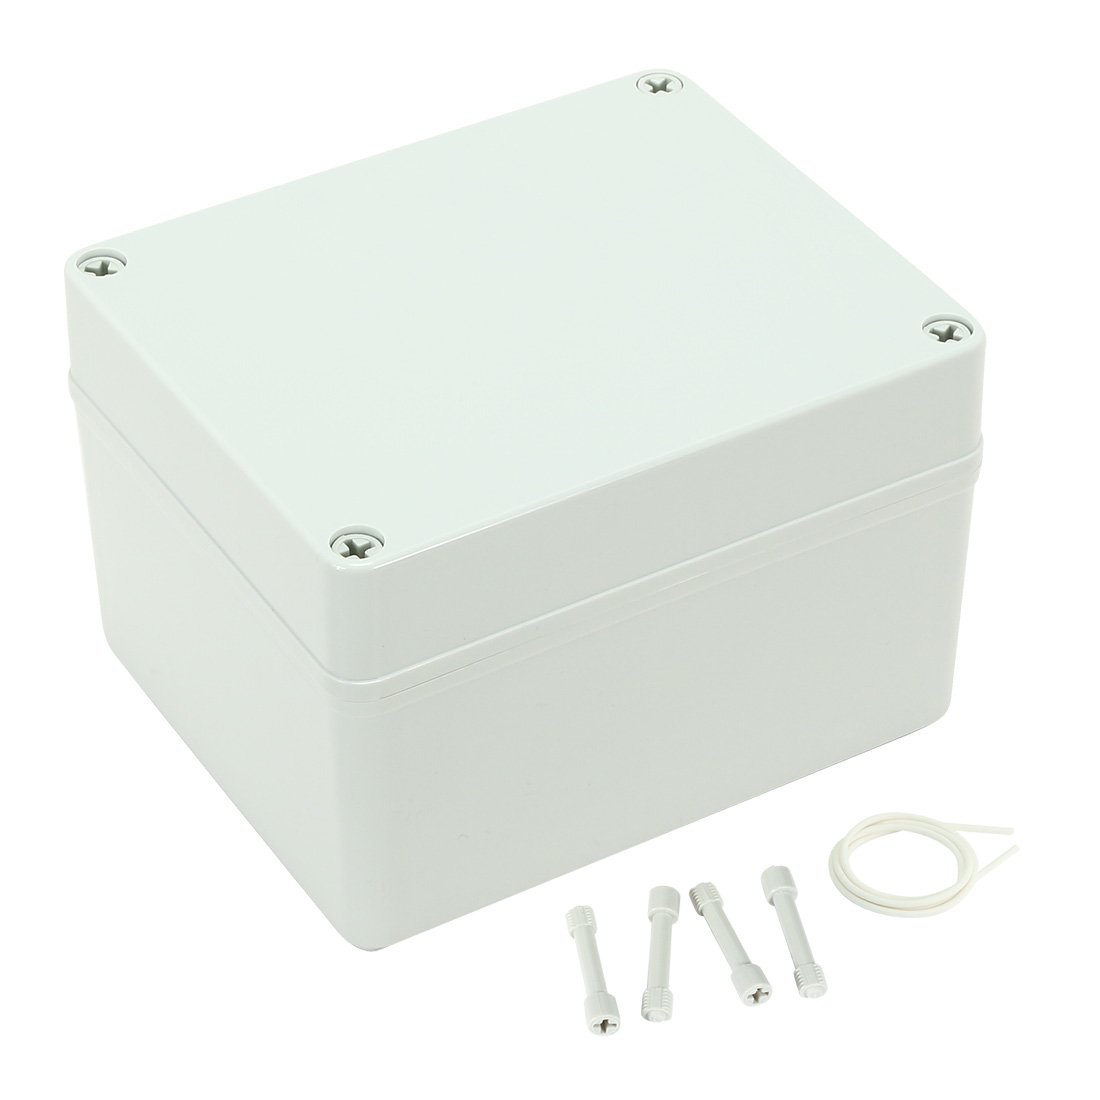 uxcell 6.7''x5.5''x4.3'' (170mmx140mmx110mm) Outdoor Plastic ABS Waterproof Junction Box Universal DIY Electrical Project Enclosure Cover